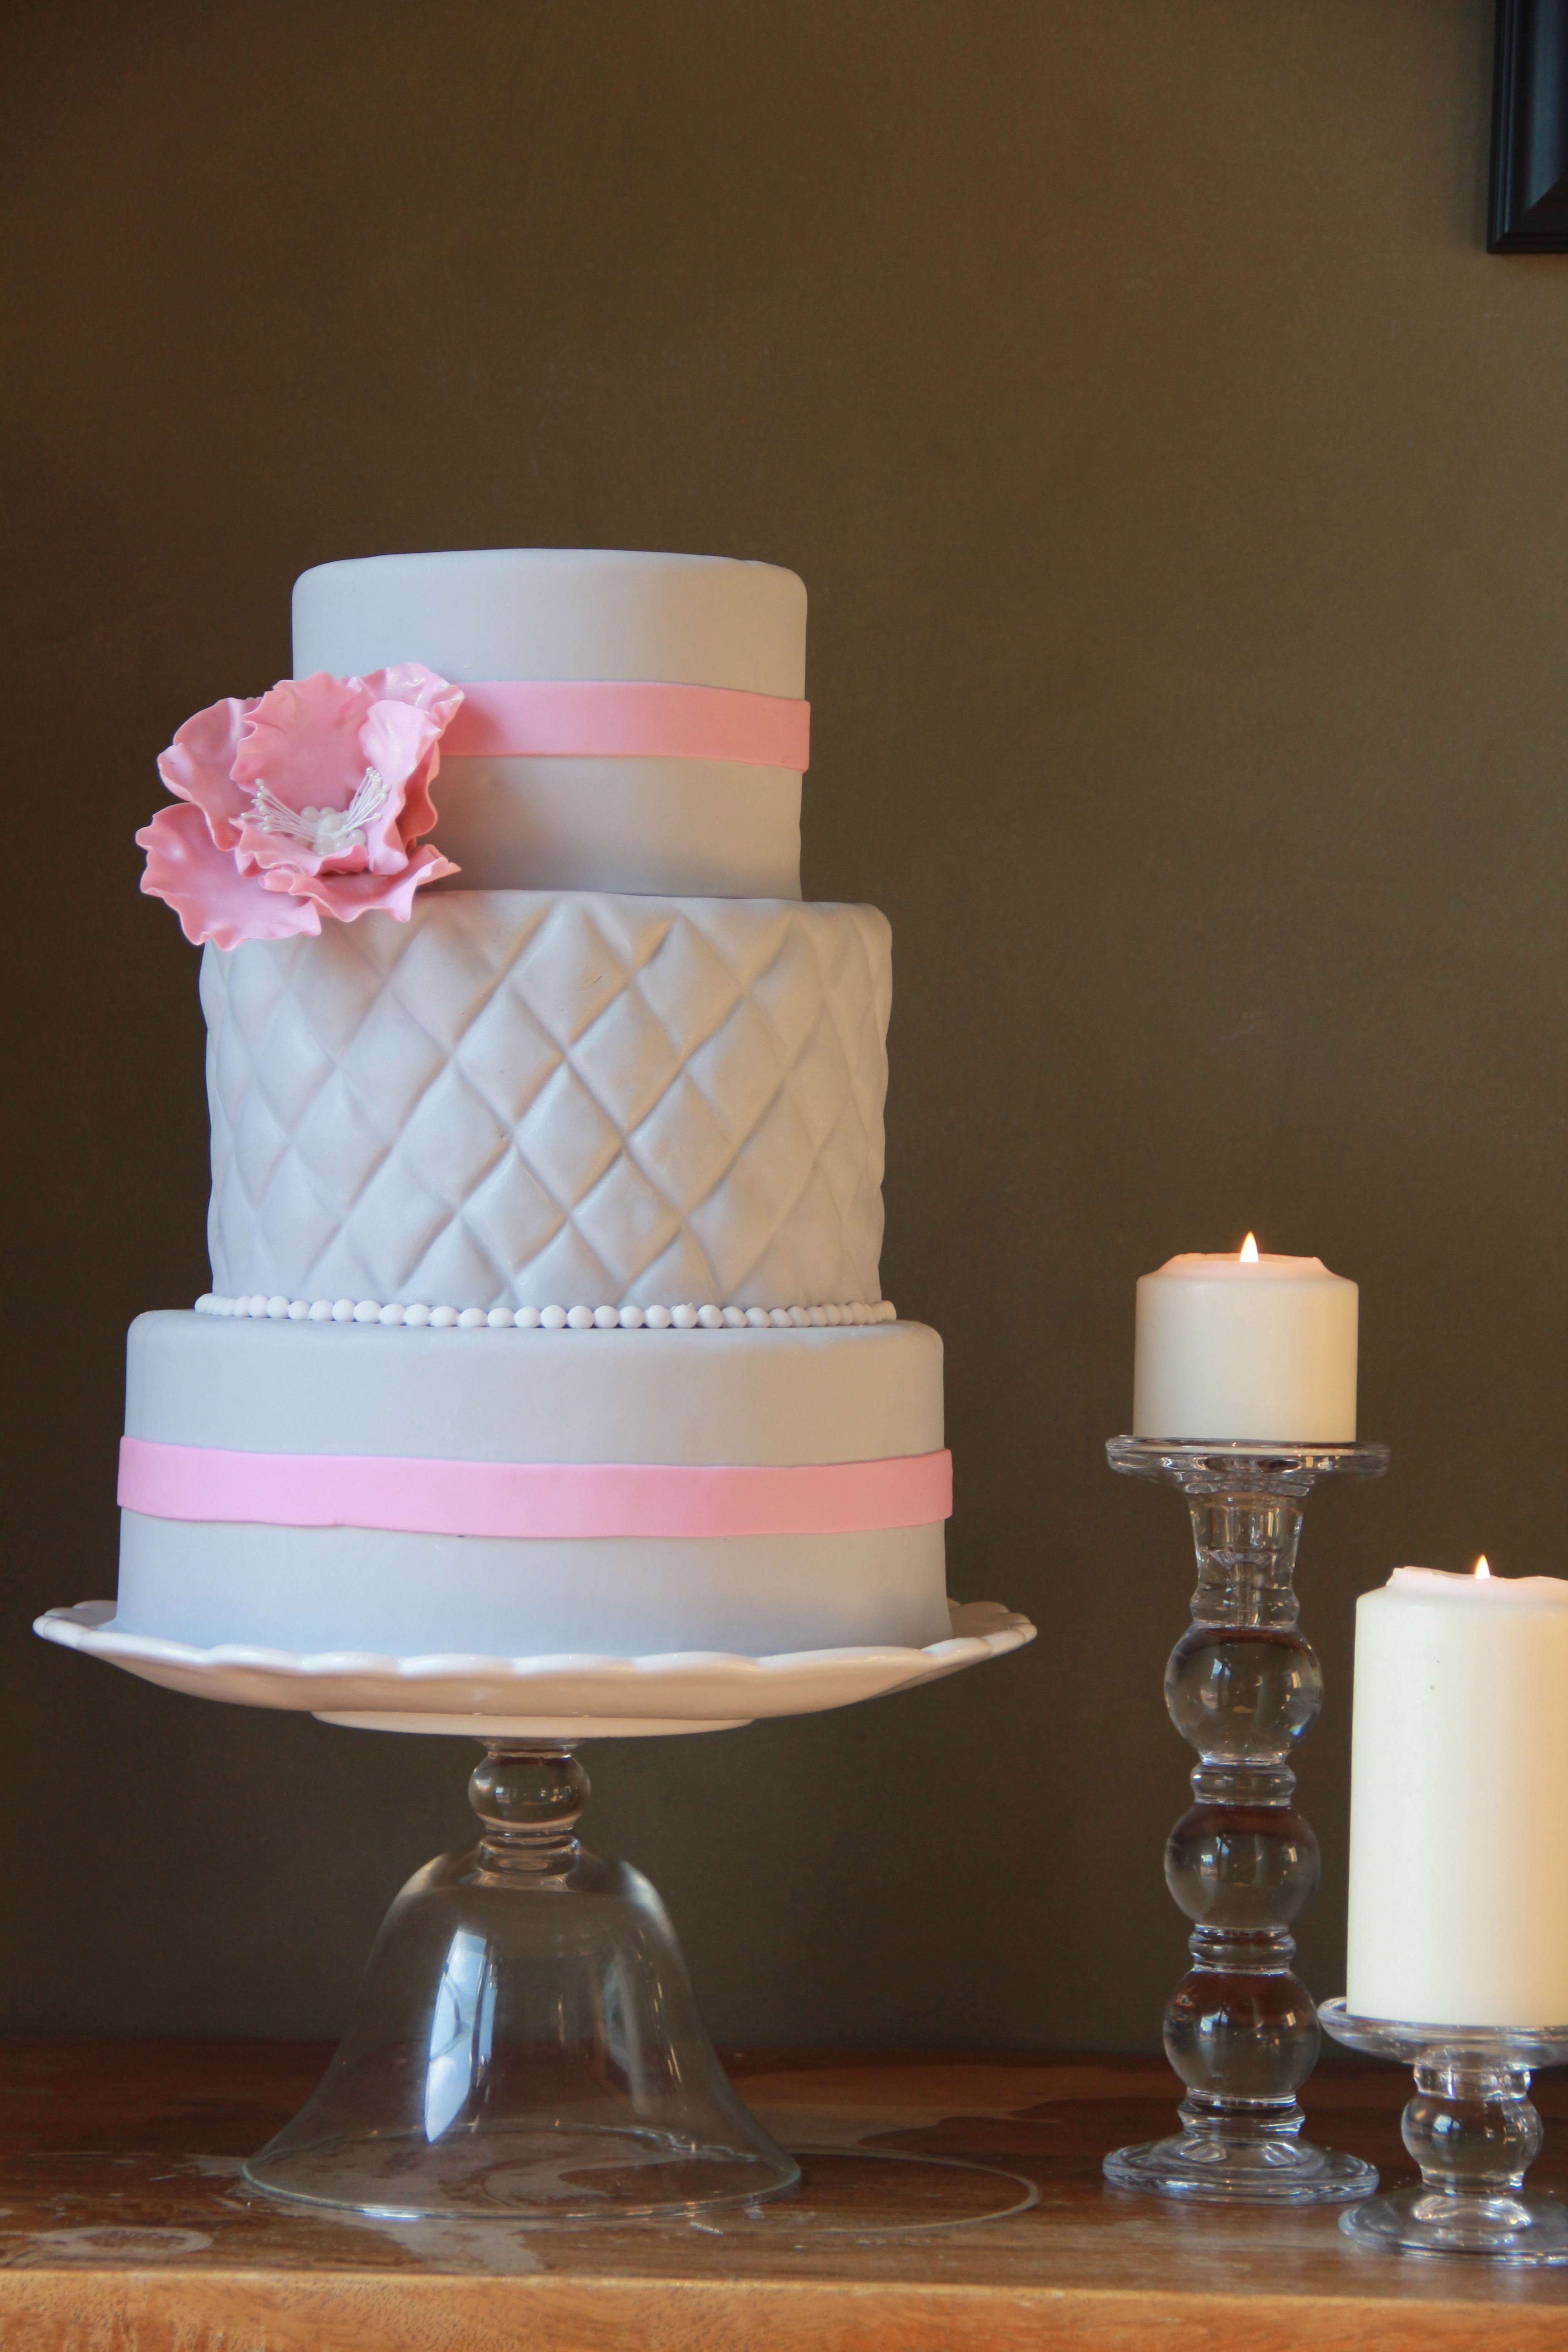 Incredible Cakes with Quilted Pattern 3456 x 5184 · 3698 kB · jpeg